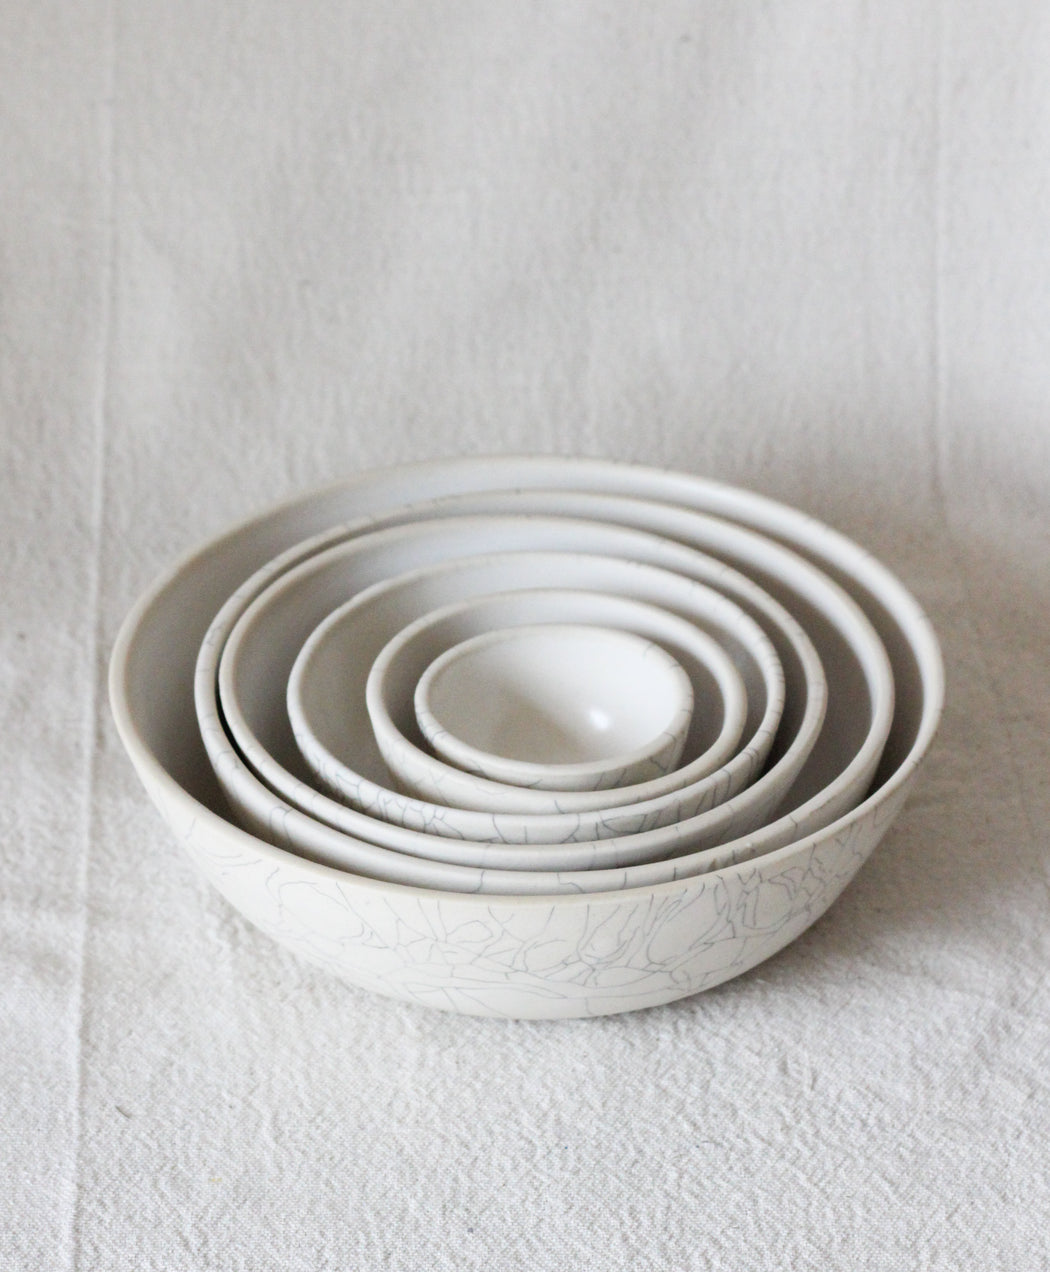 Full Set Nesting Bowls - Crackle